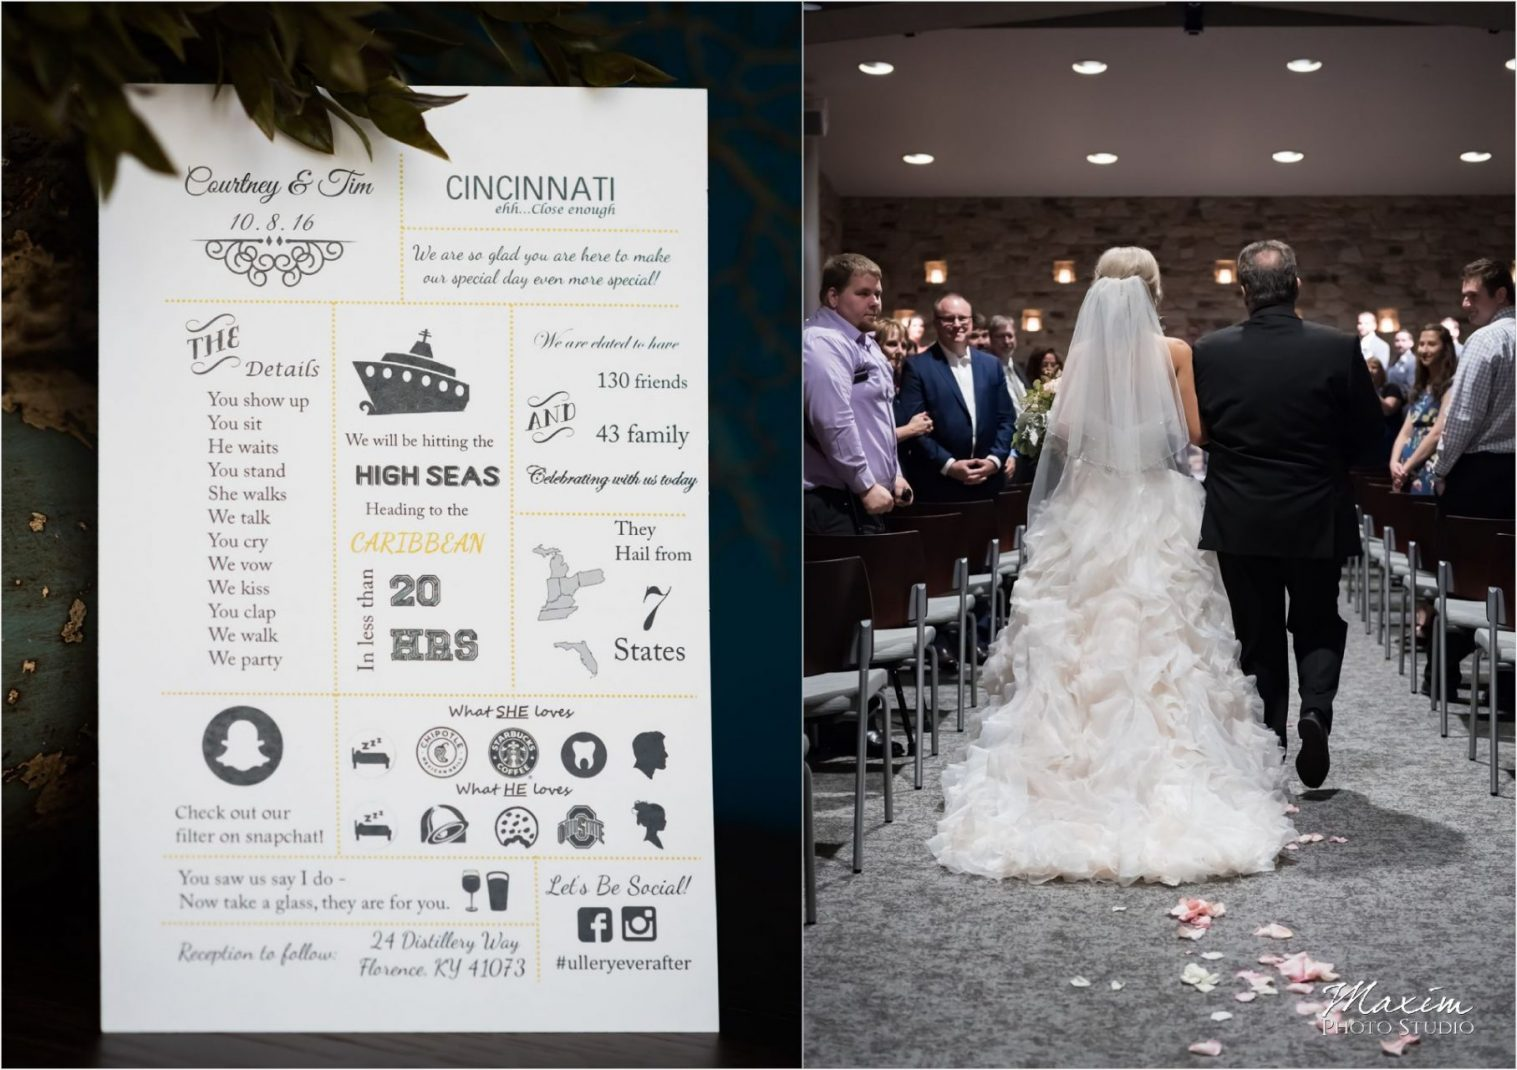 Crossroads Cincinnati Wedding Ceremony